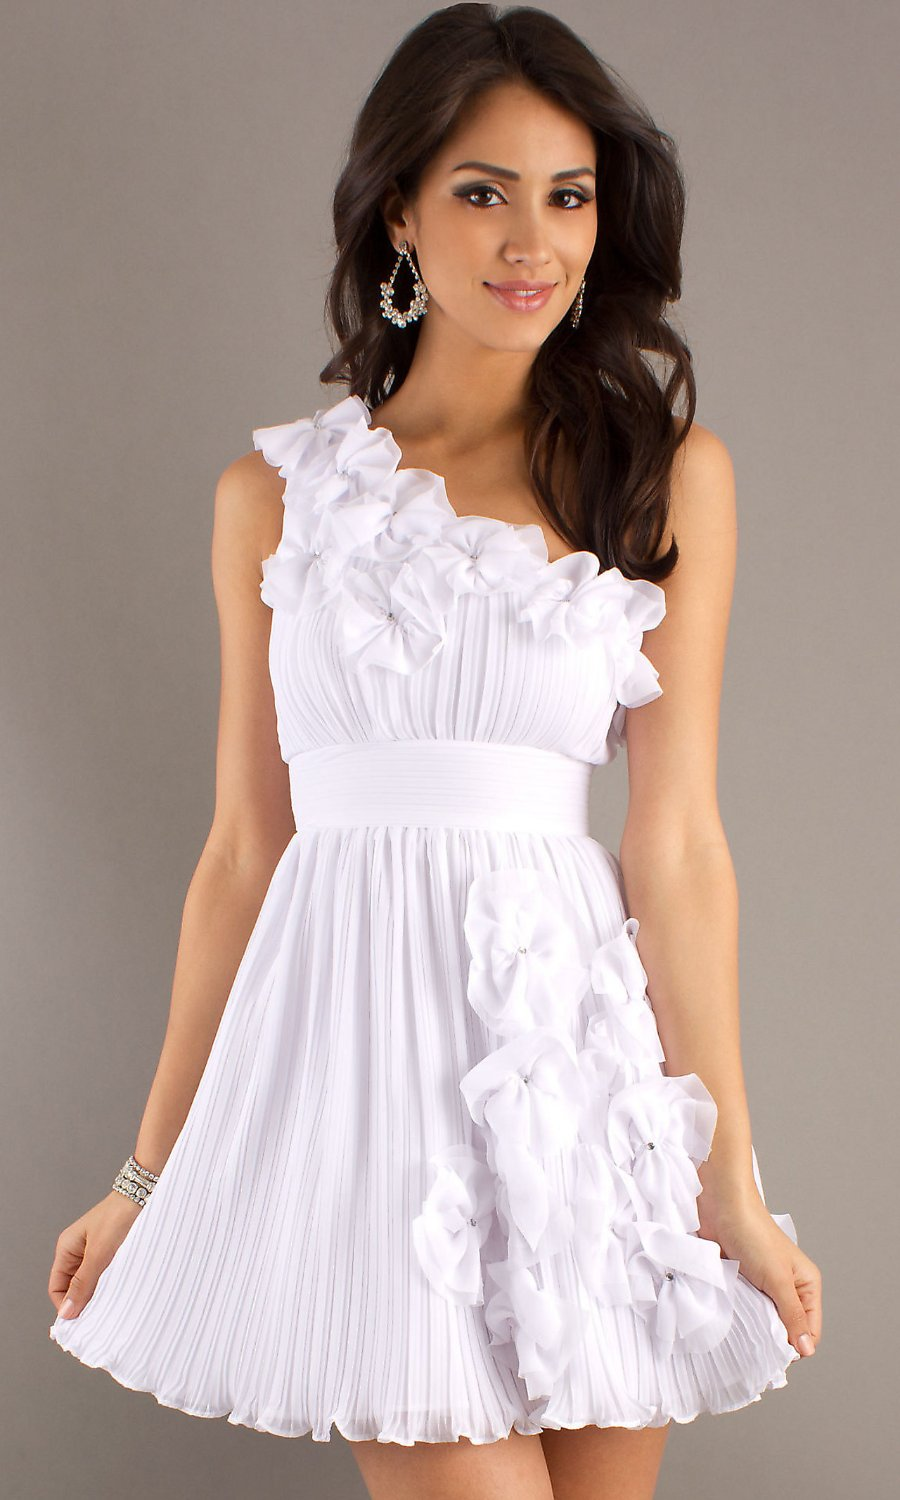 Olá a todas as pessoas! Free-Shipping-2012-Fall-Newest-Cute-White-One-Shoulder-Appliques-Chiffon-Bridesmaid-Dress-A082202